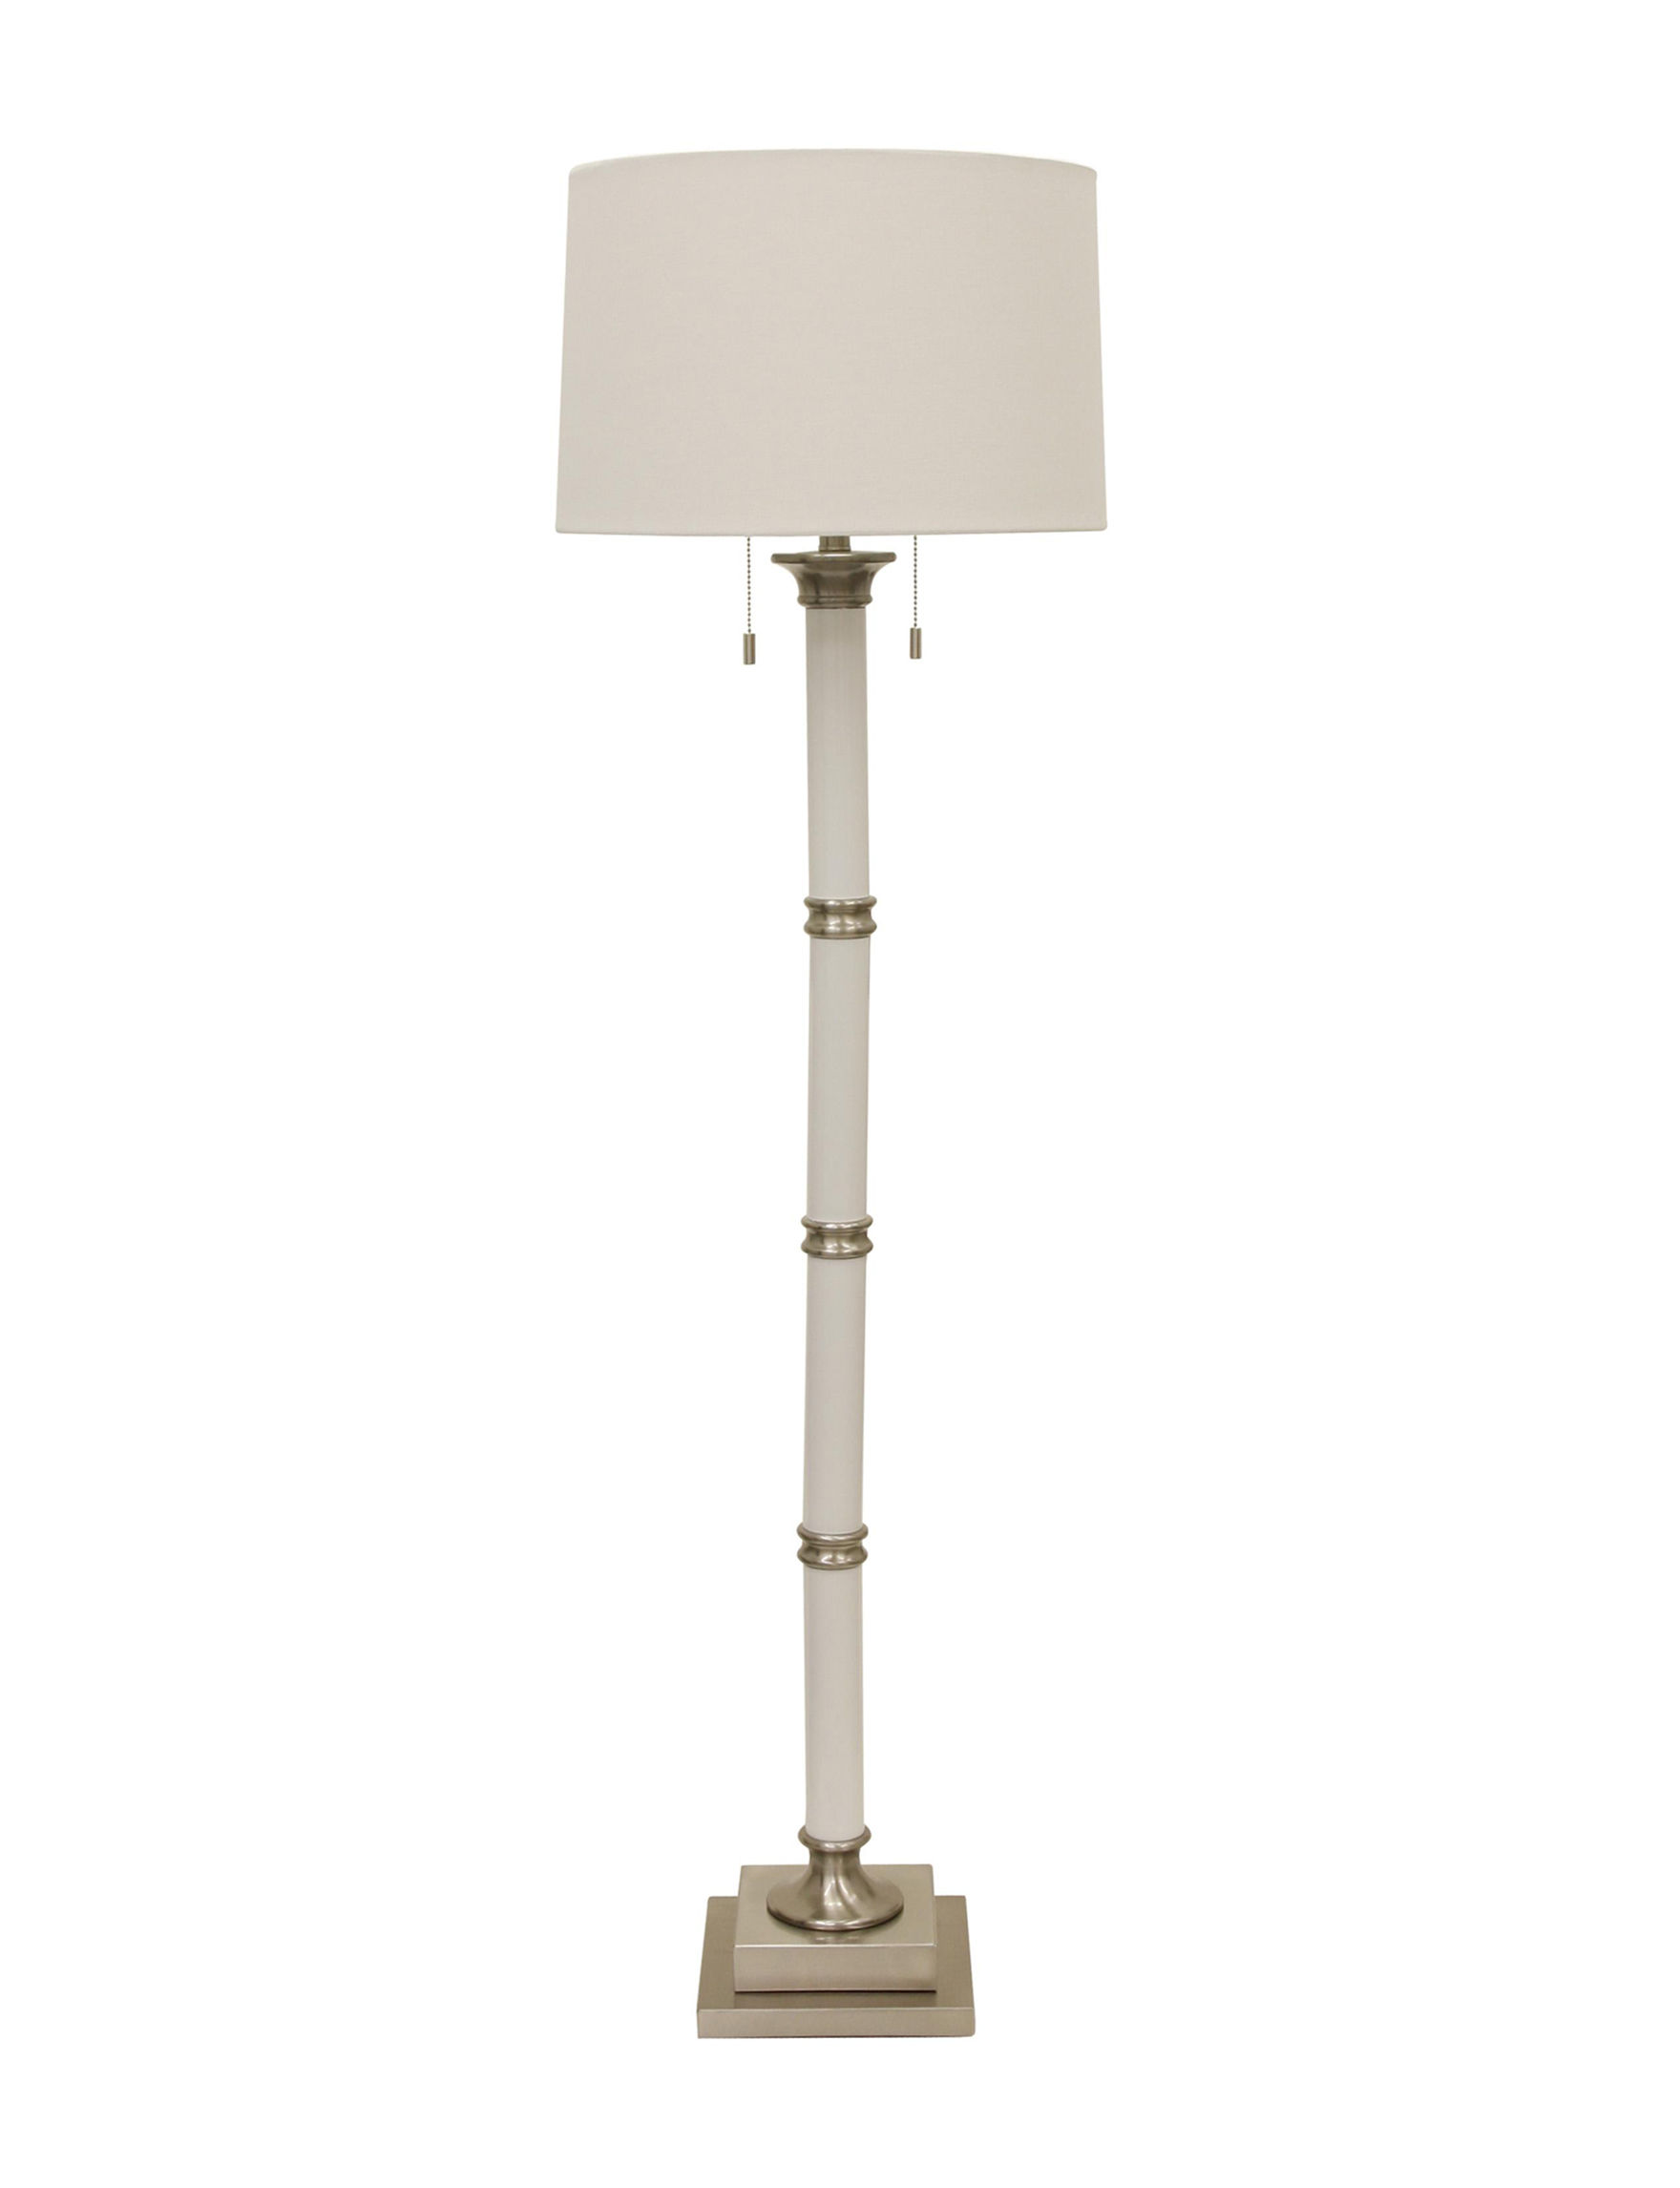 Decor therapy column twin pull floor lamp stage stores for Decor therapy